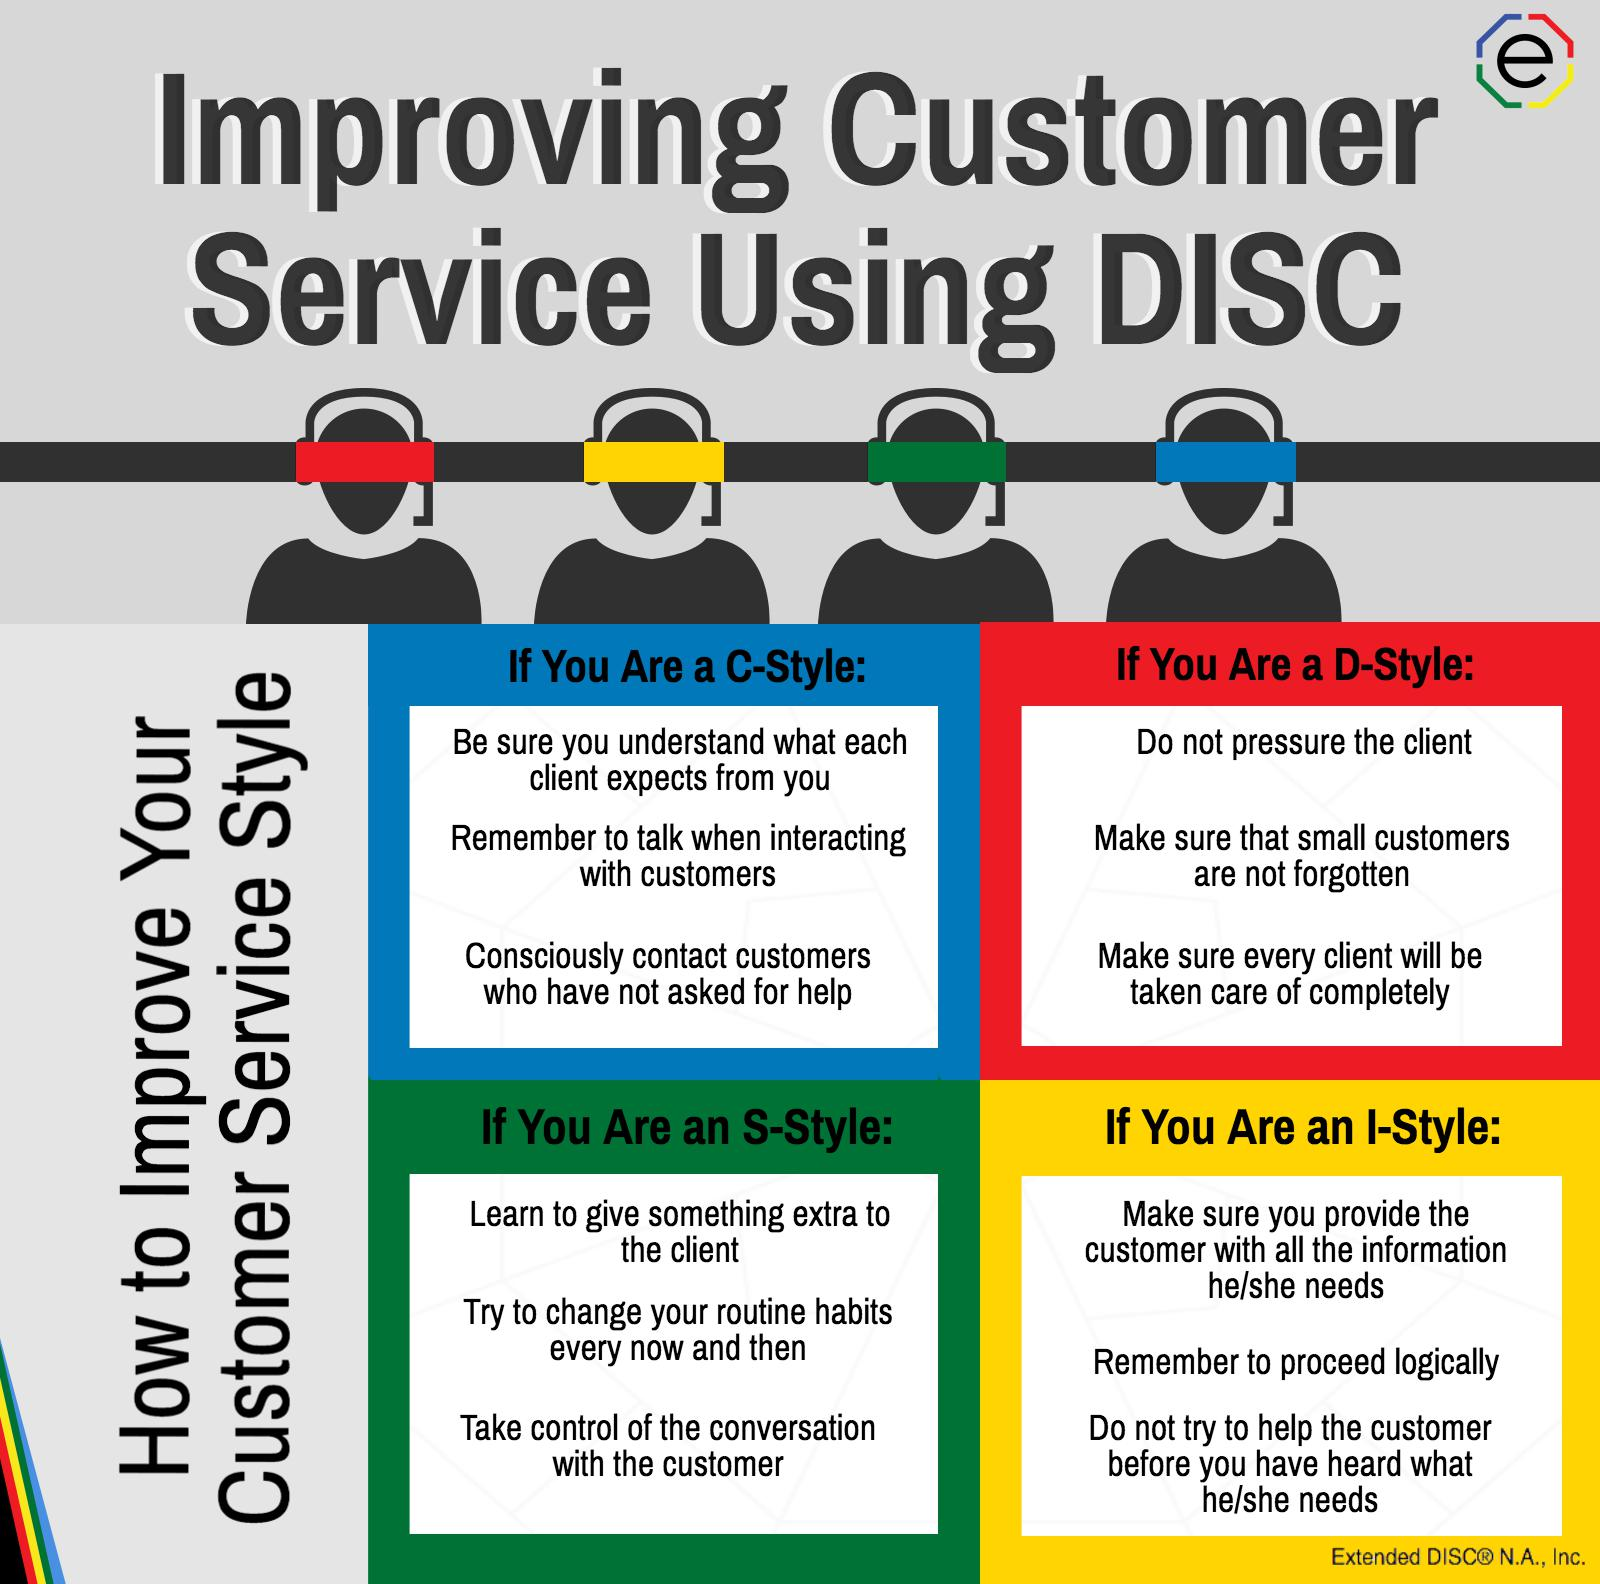 Customer Service Improves Using DISC Assessments